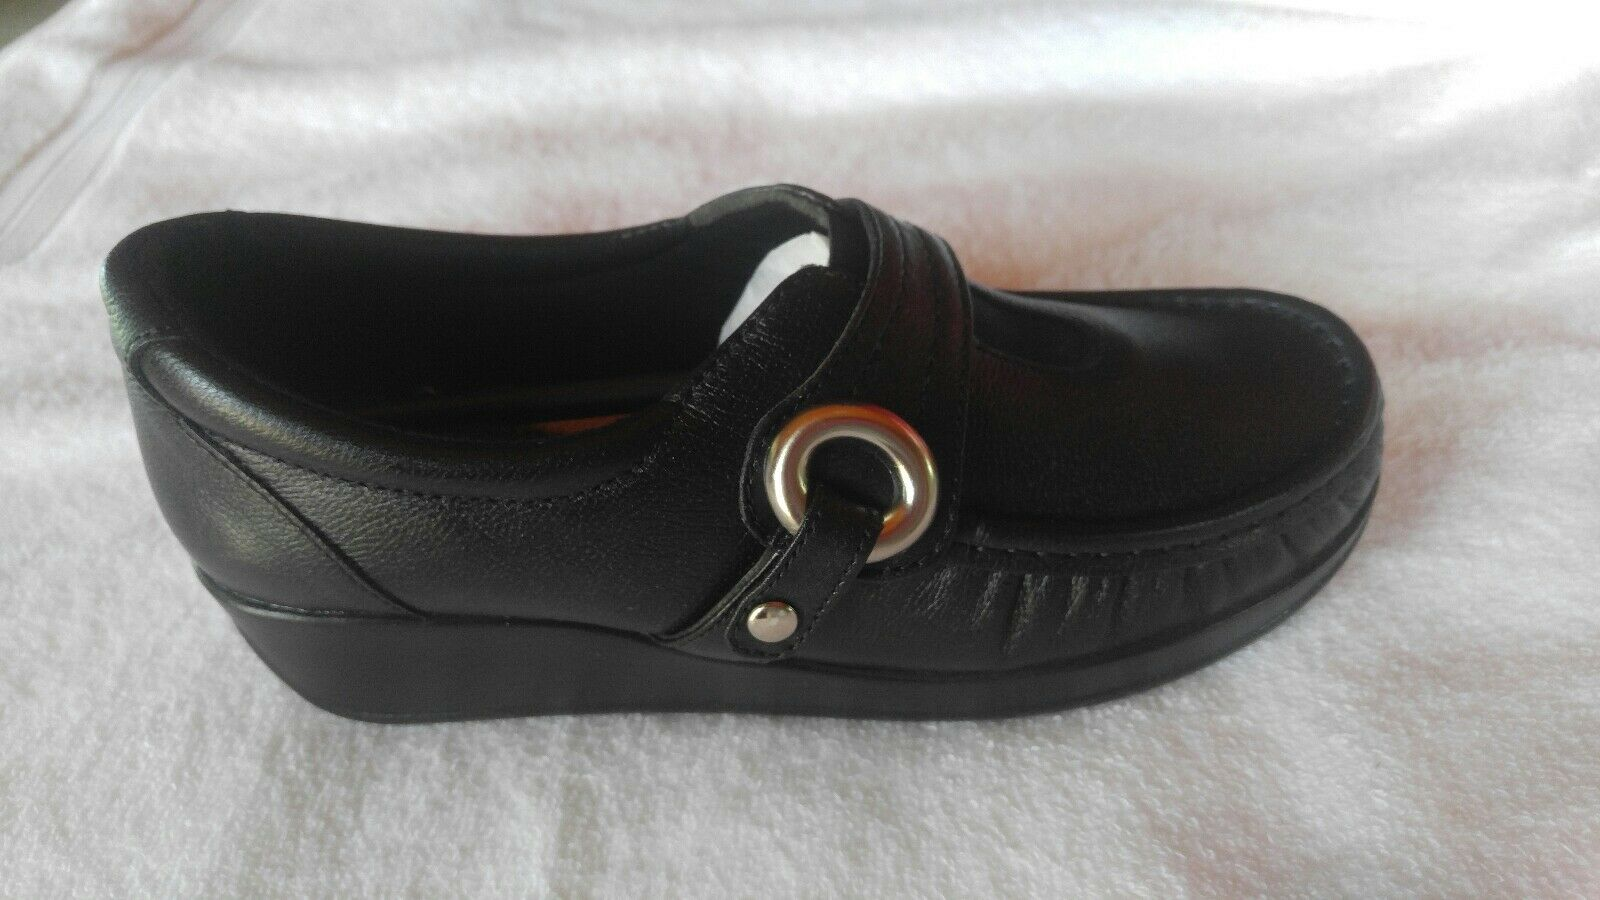 Women shoes Black Flat Loafer Size 7 Comfort by Andrea Collections 2017